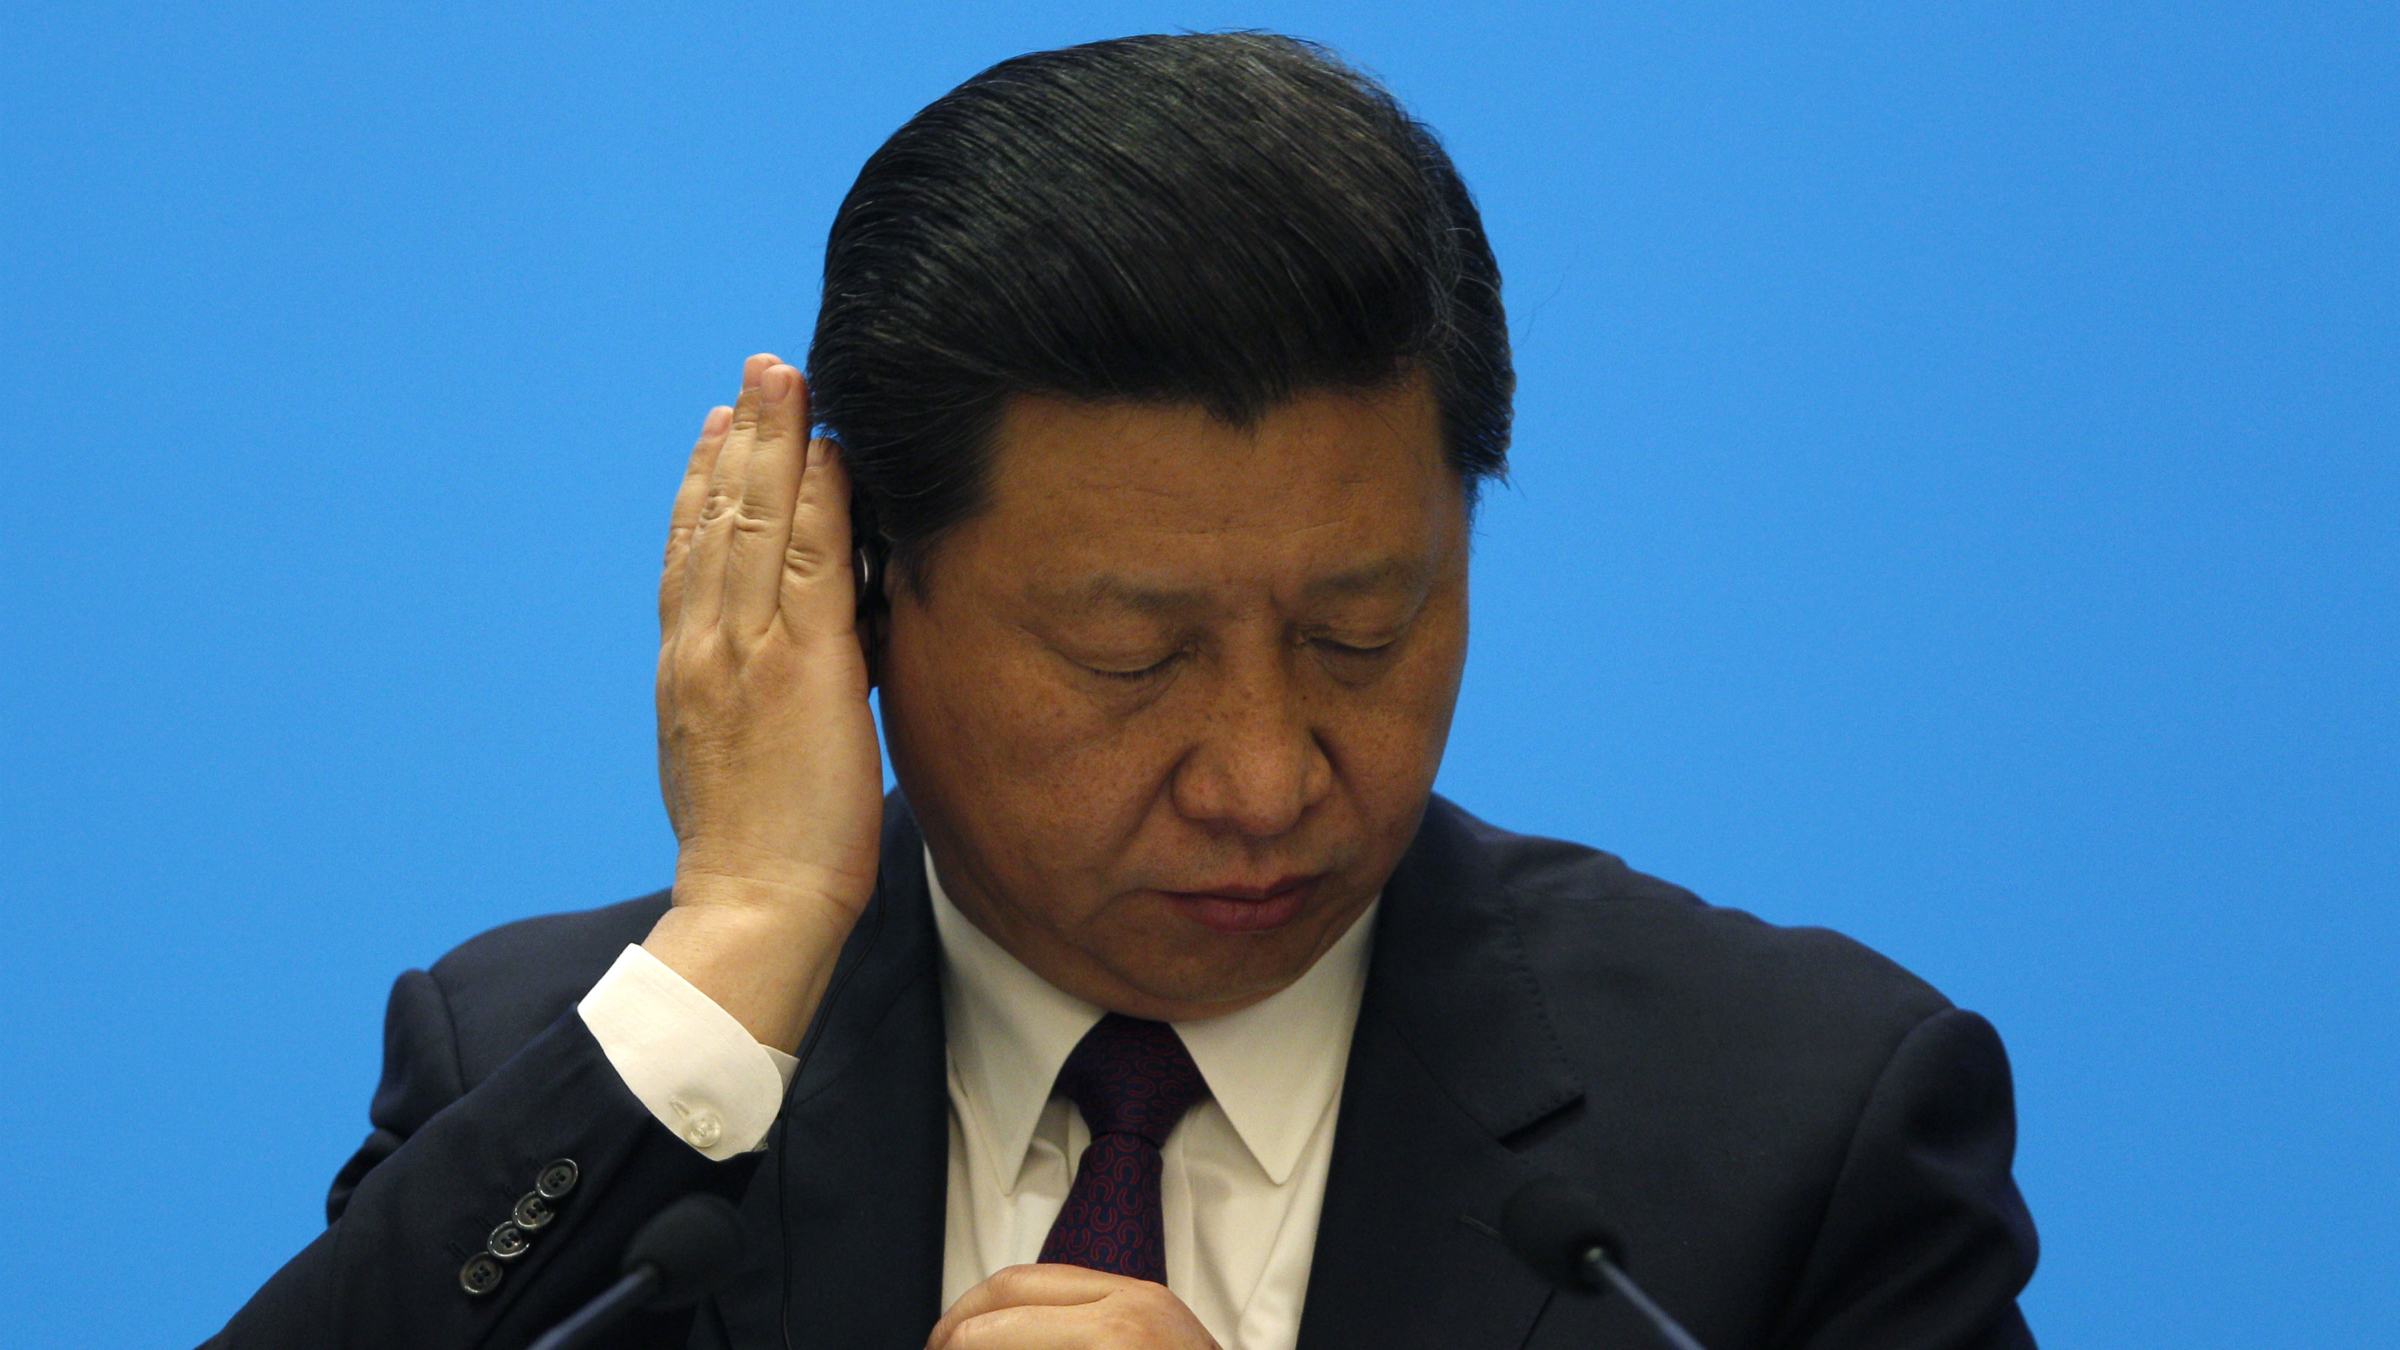 China's President Xi Jinping reacts during a meeting with representatives of entrepreneurs at the annual Boao Forum in Boao, in southern China's Hainan province, Monday, April 8, 2013. (AP Photo/Tyrone Siu, Pool